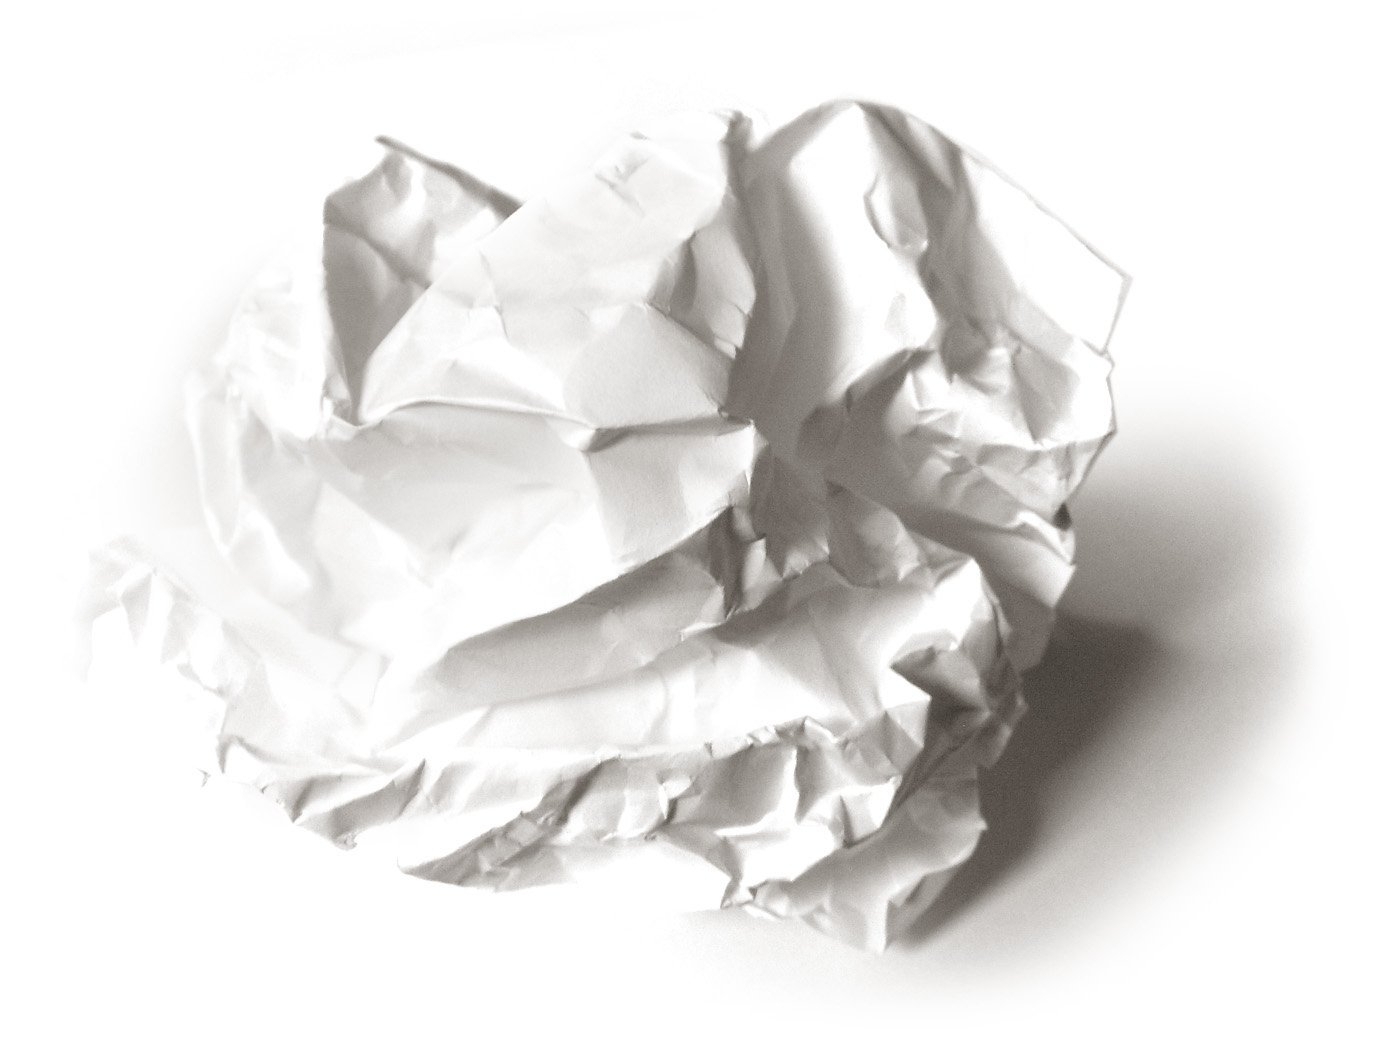 Free Wrinkled Crumpled Paper Stock Photo - FreeImages.com